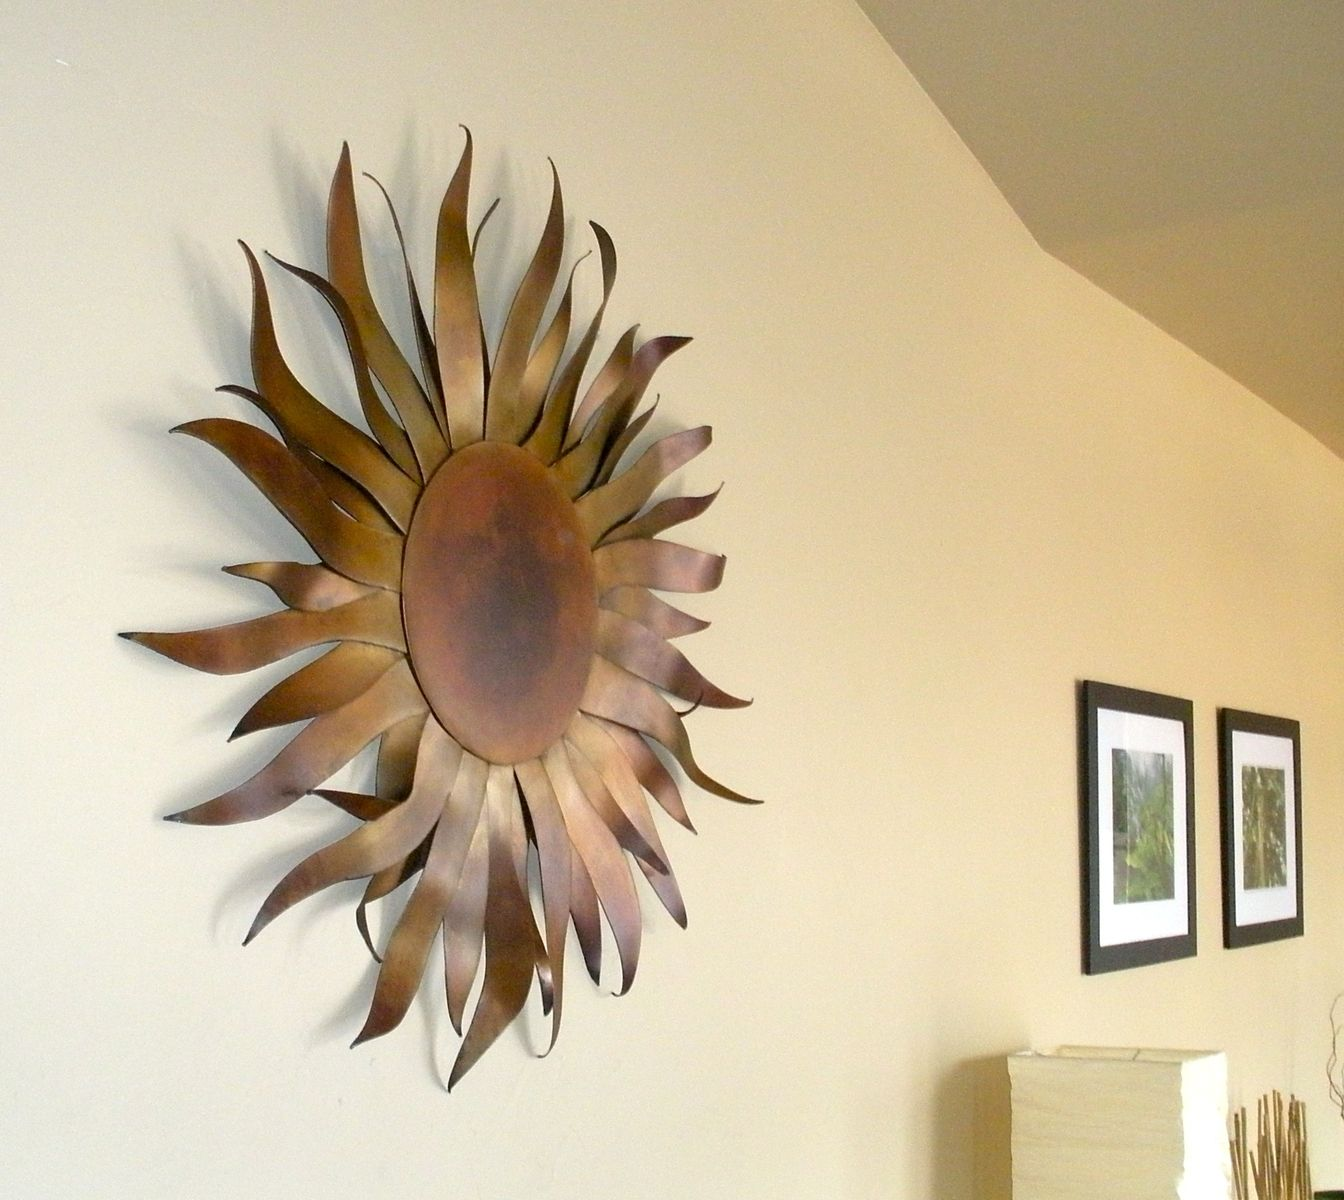 Original Metal Sun Sculpture Wall Art | sundials and sun sculptures ...